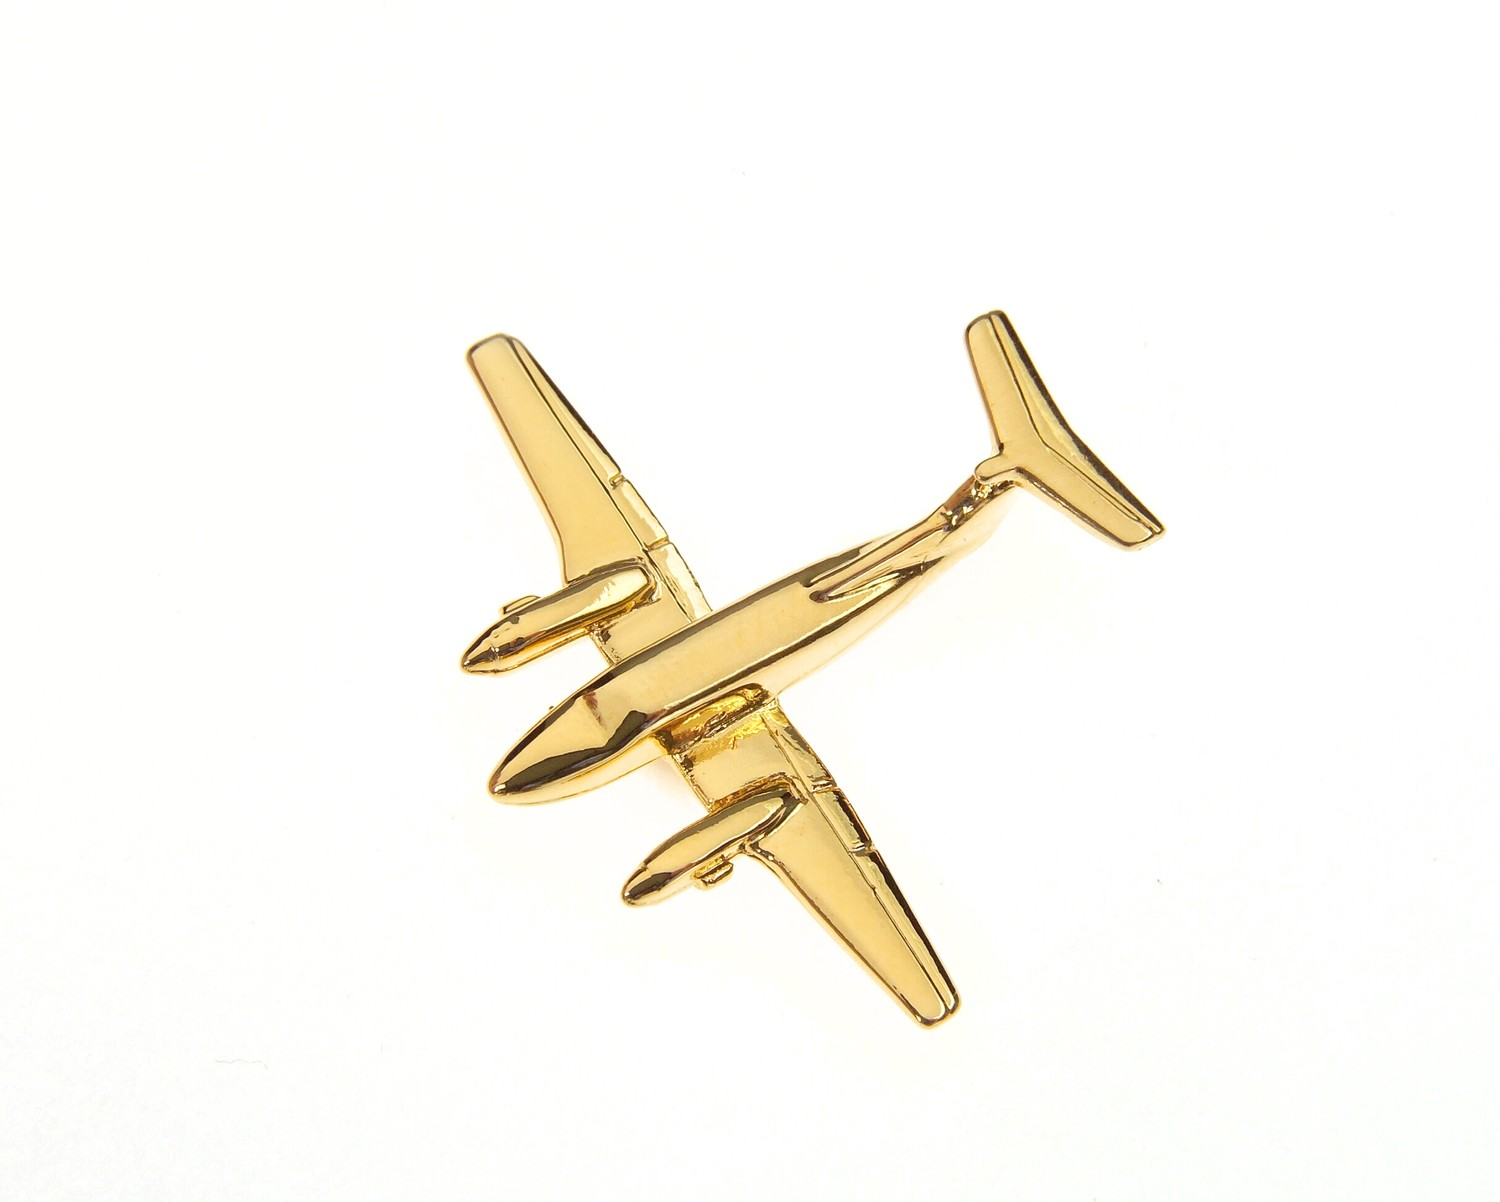 Beech 200 Gold Plated Tie / Lapel Pin